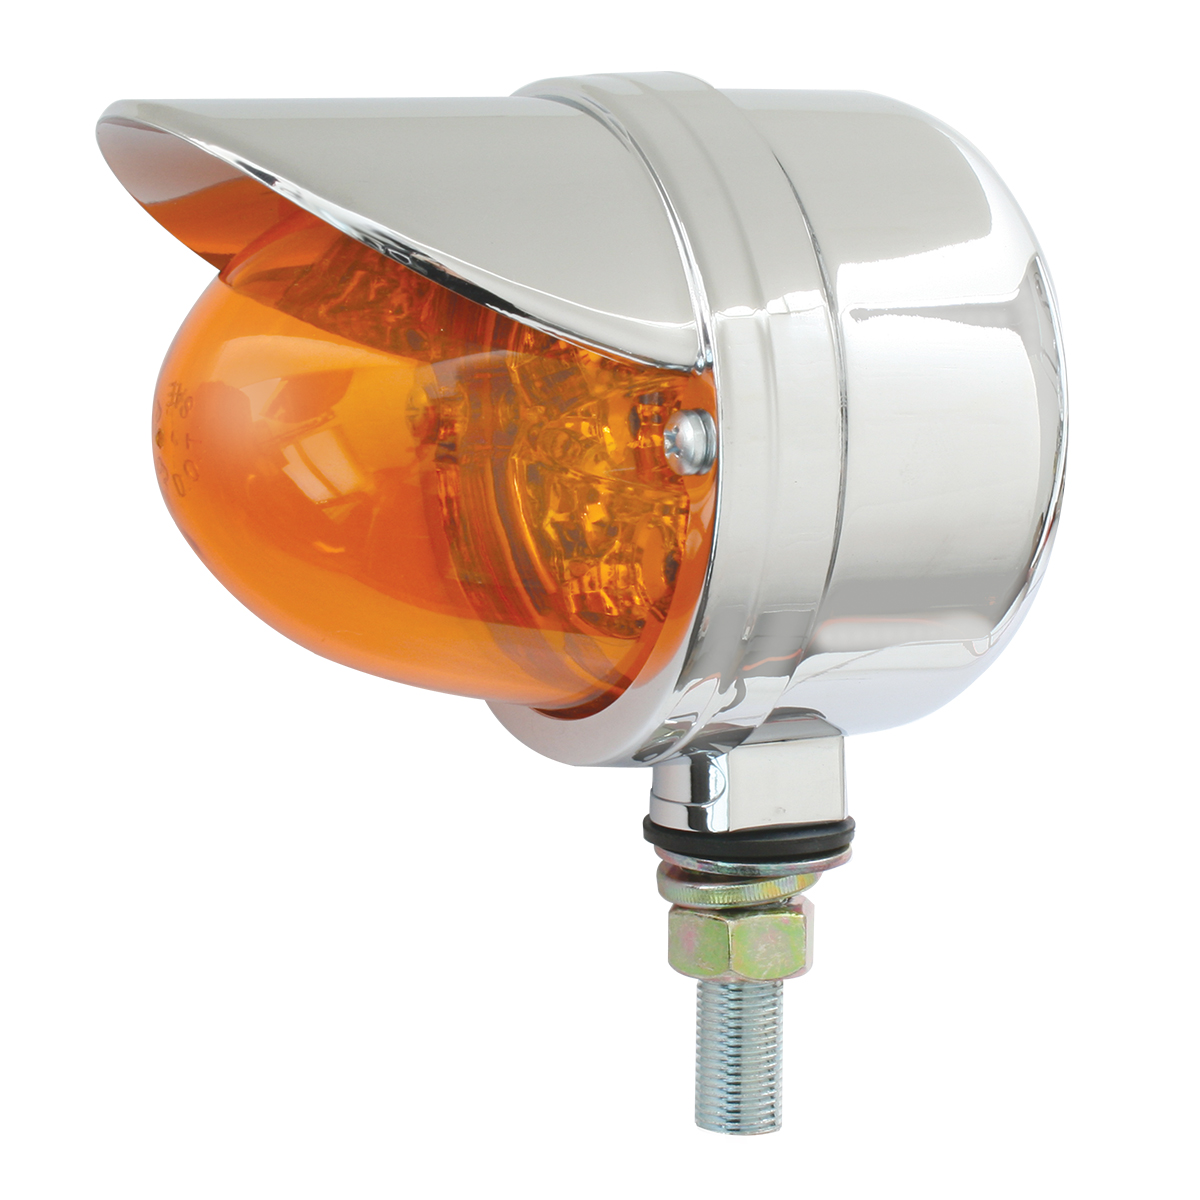 77922 Single Face Spyder LED Pedestal Light in Amber/Amber